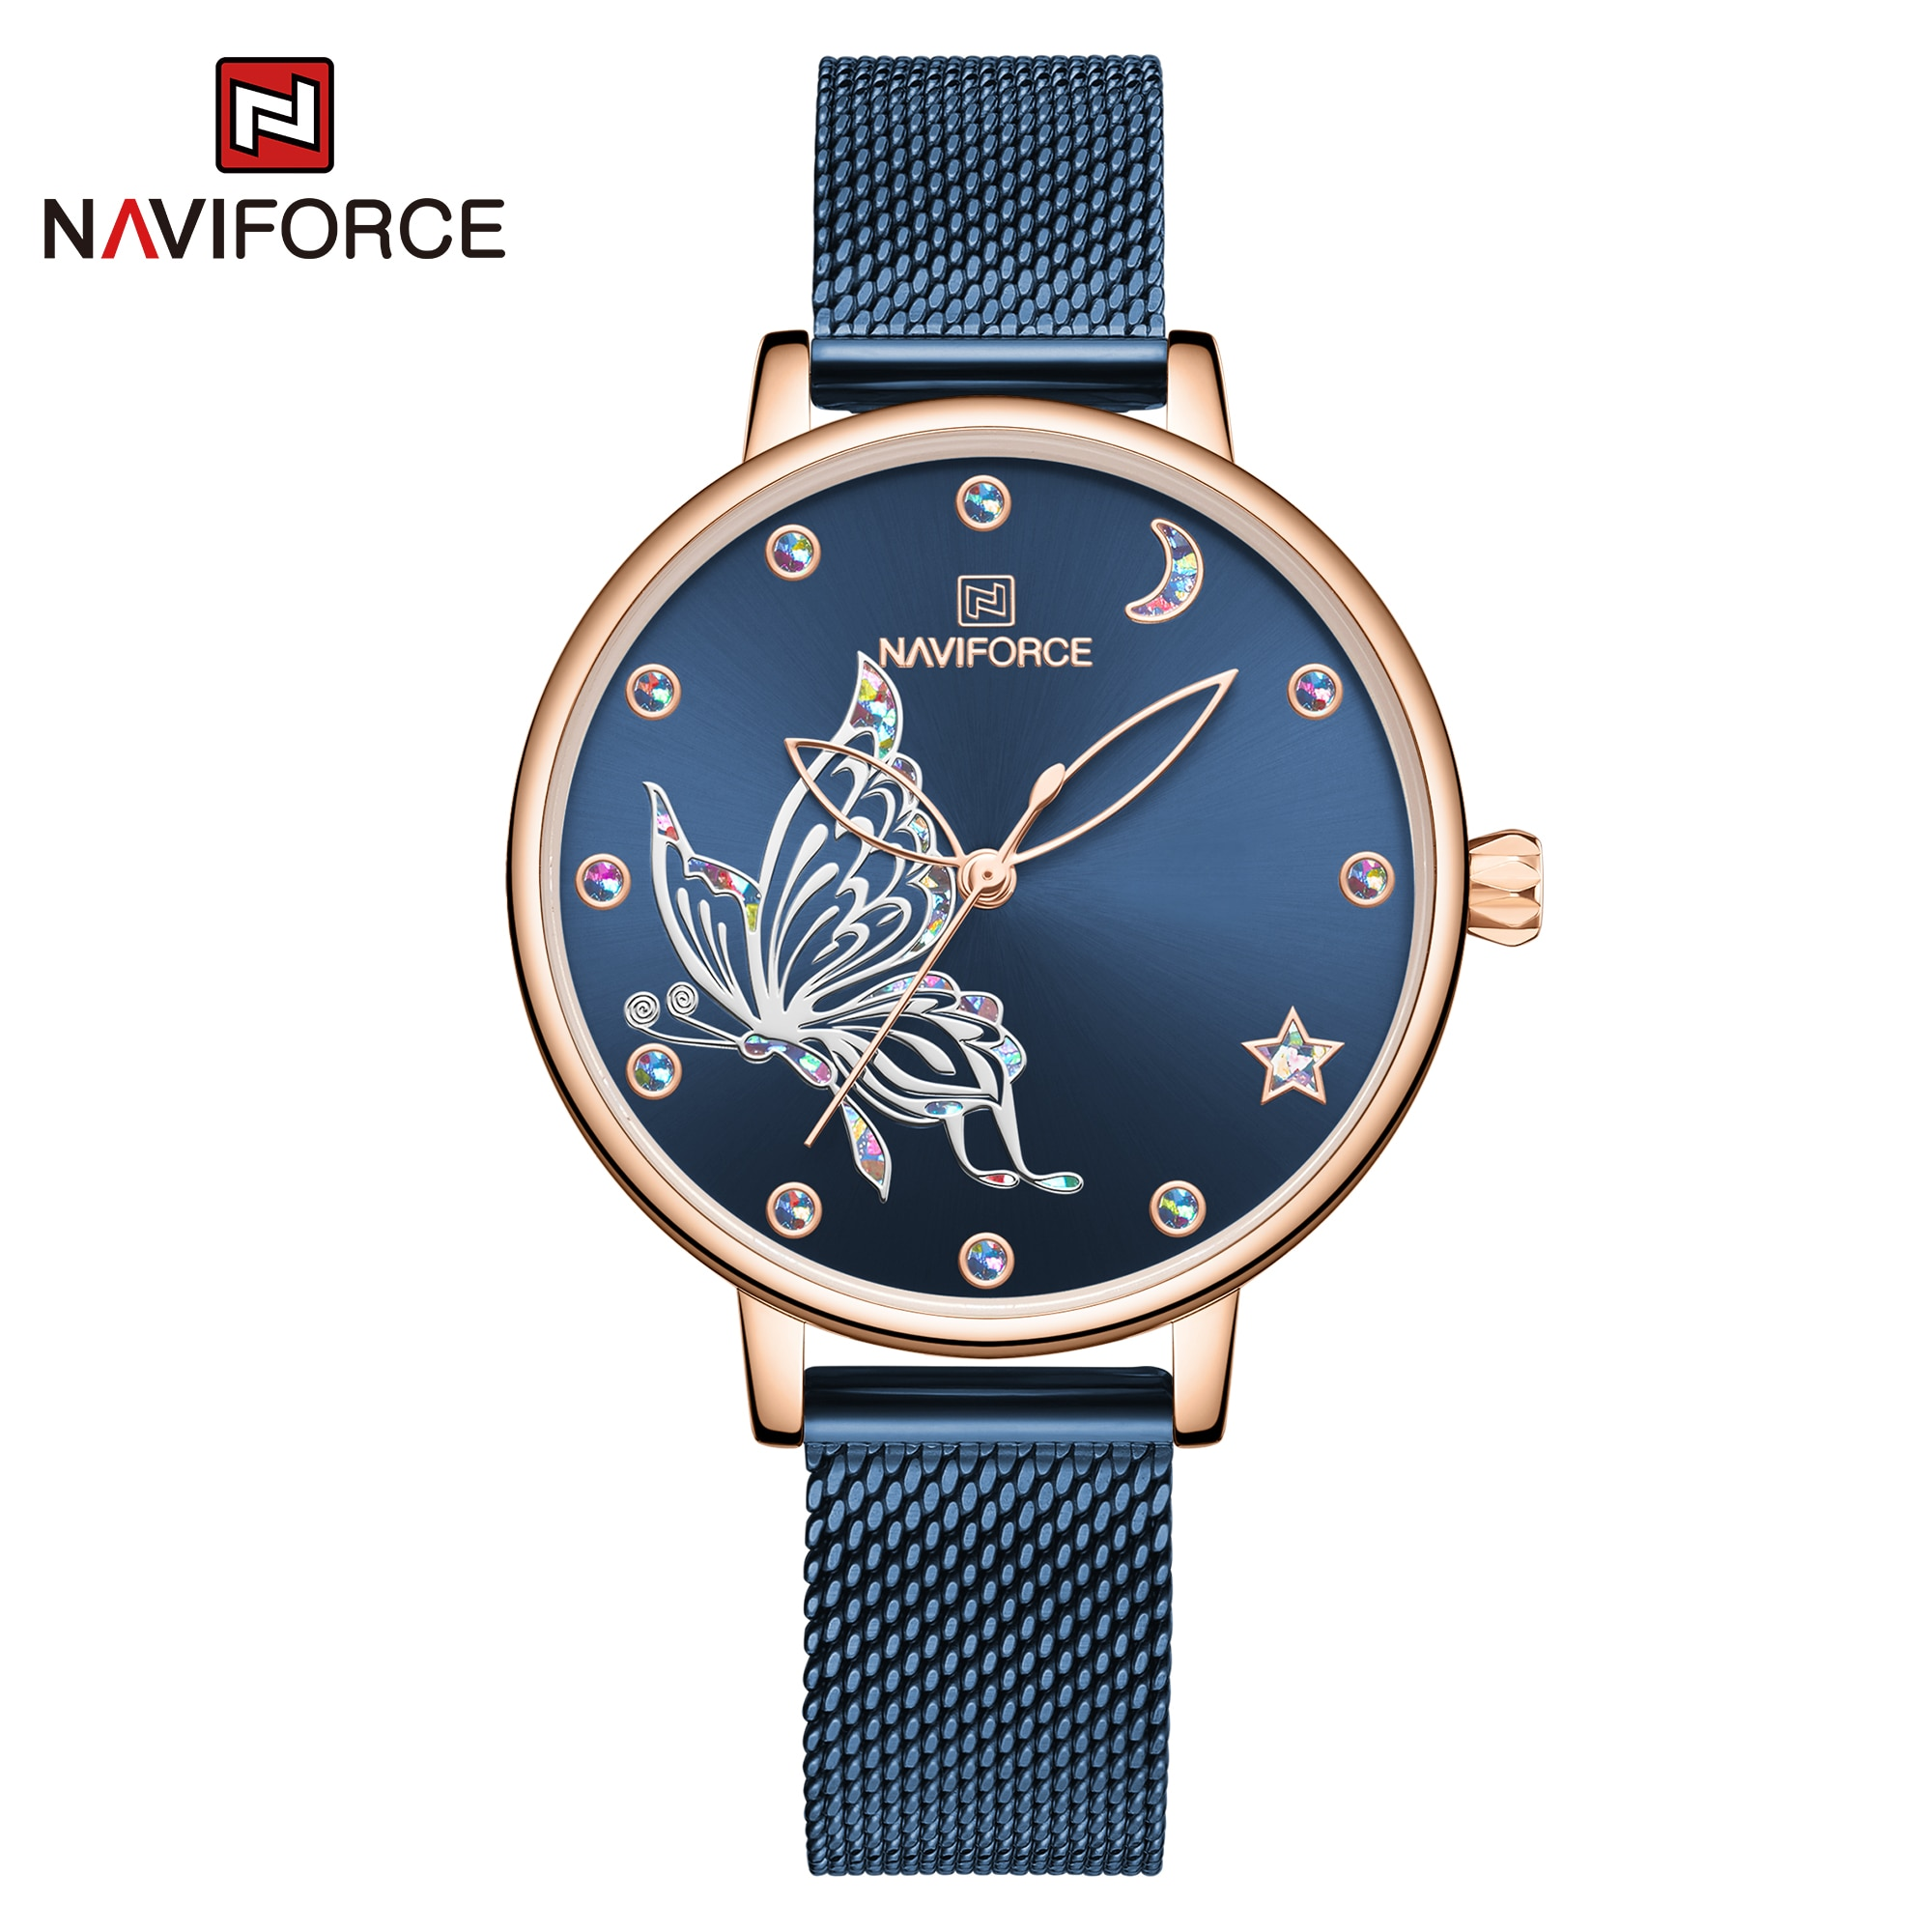 NAVIFORCE Luxury Brand Watch Women Fashion Dress Quartz Ladies Mesh Stainless Steel 3ATM Waterproof Casual Watches for Girl 2020 enlarge